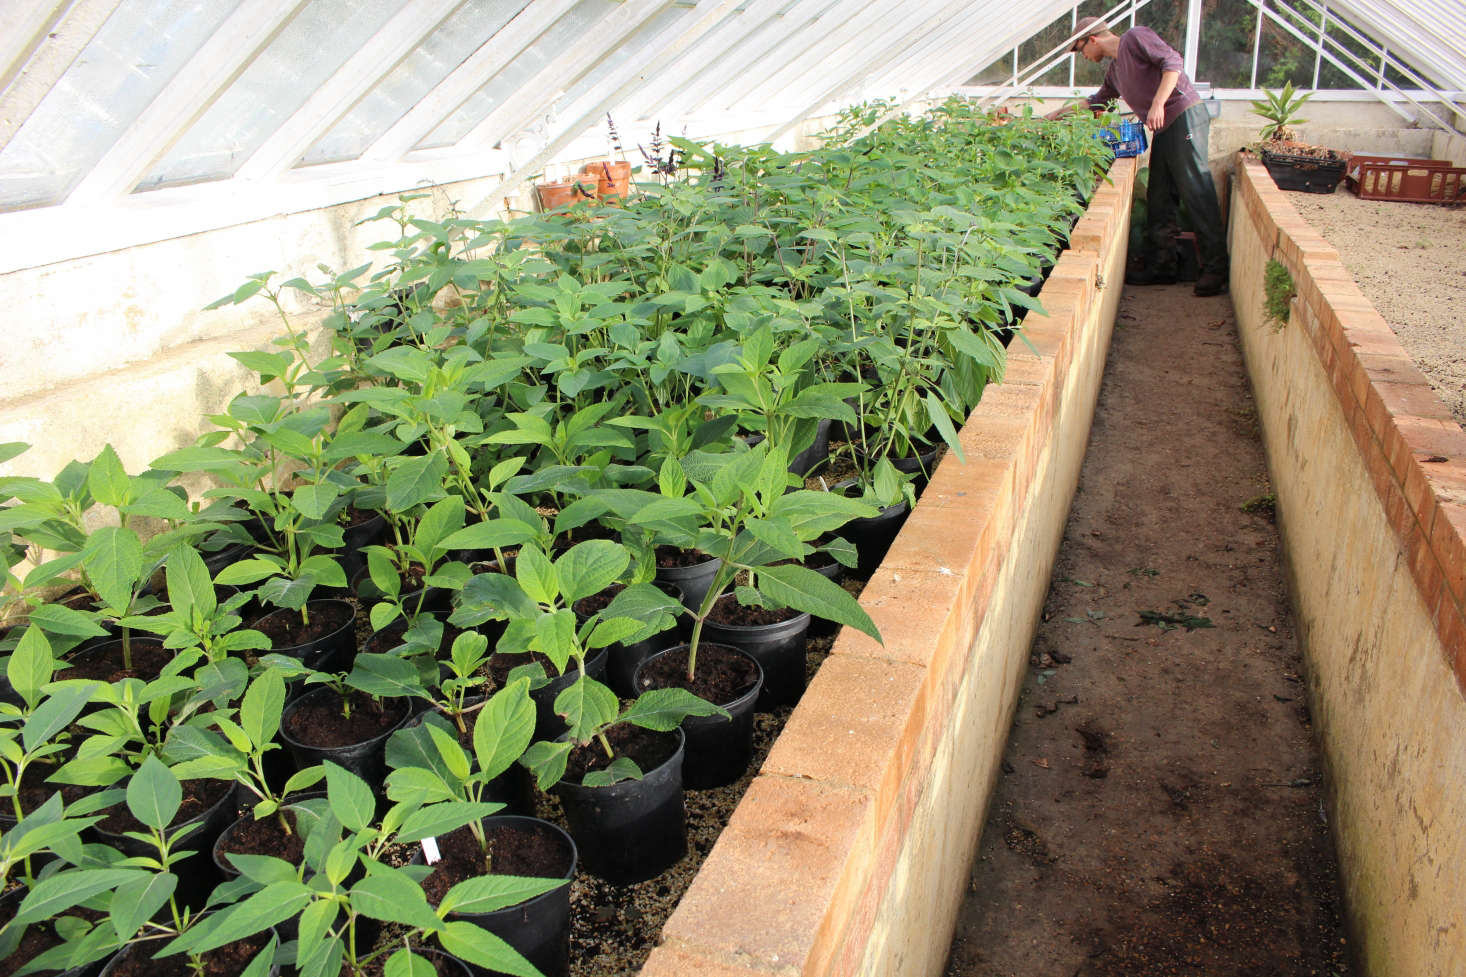 Propagate salvias from semi-ripe stems in late summer. These young plants at Gravteye were started from cuttings taken in late August. They will be held in